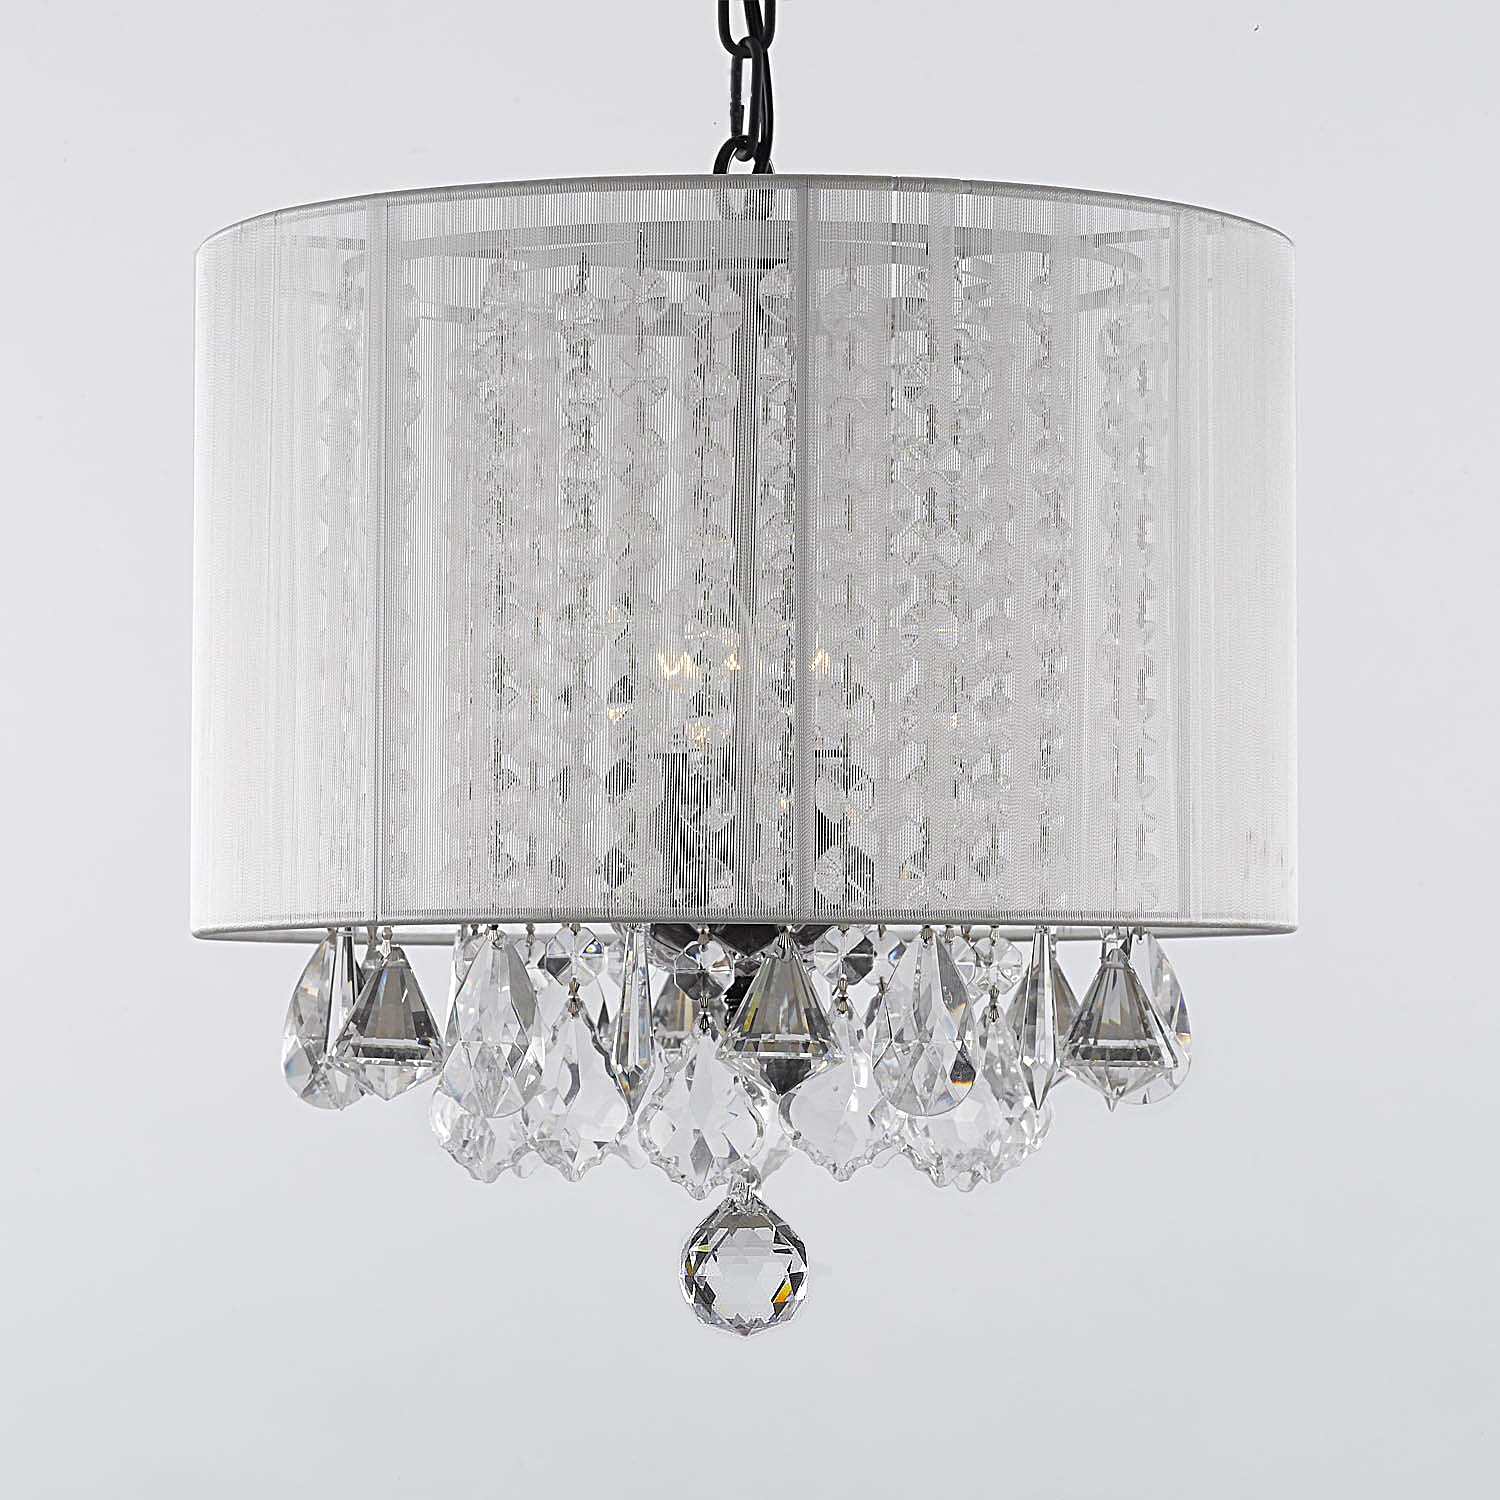 White Chandelier Lamp Shades Lamps Shades With Regard To Chandelier Light Shades (View 12 of 25)